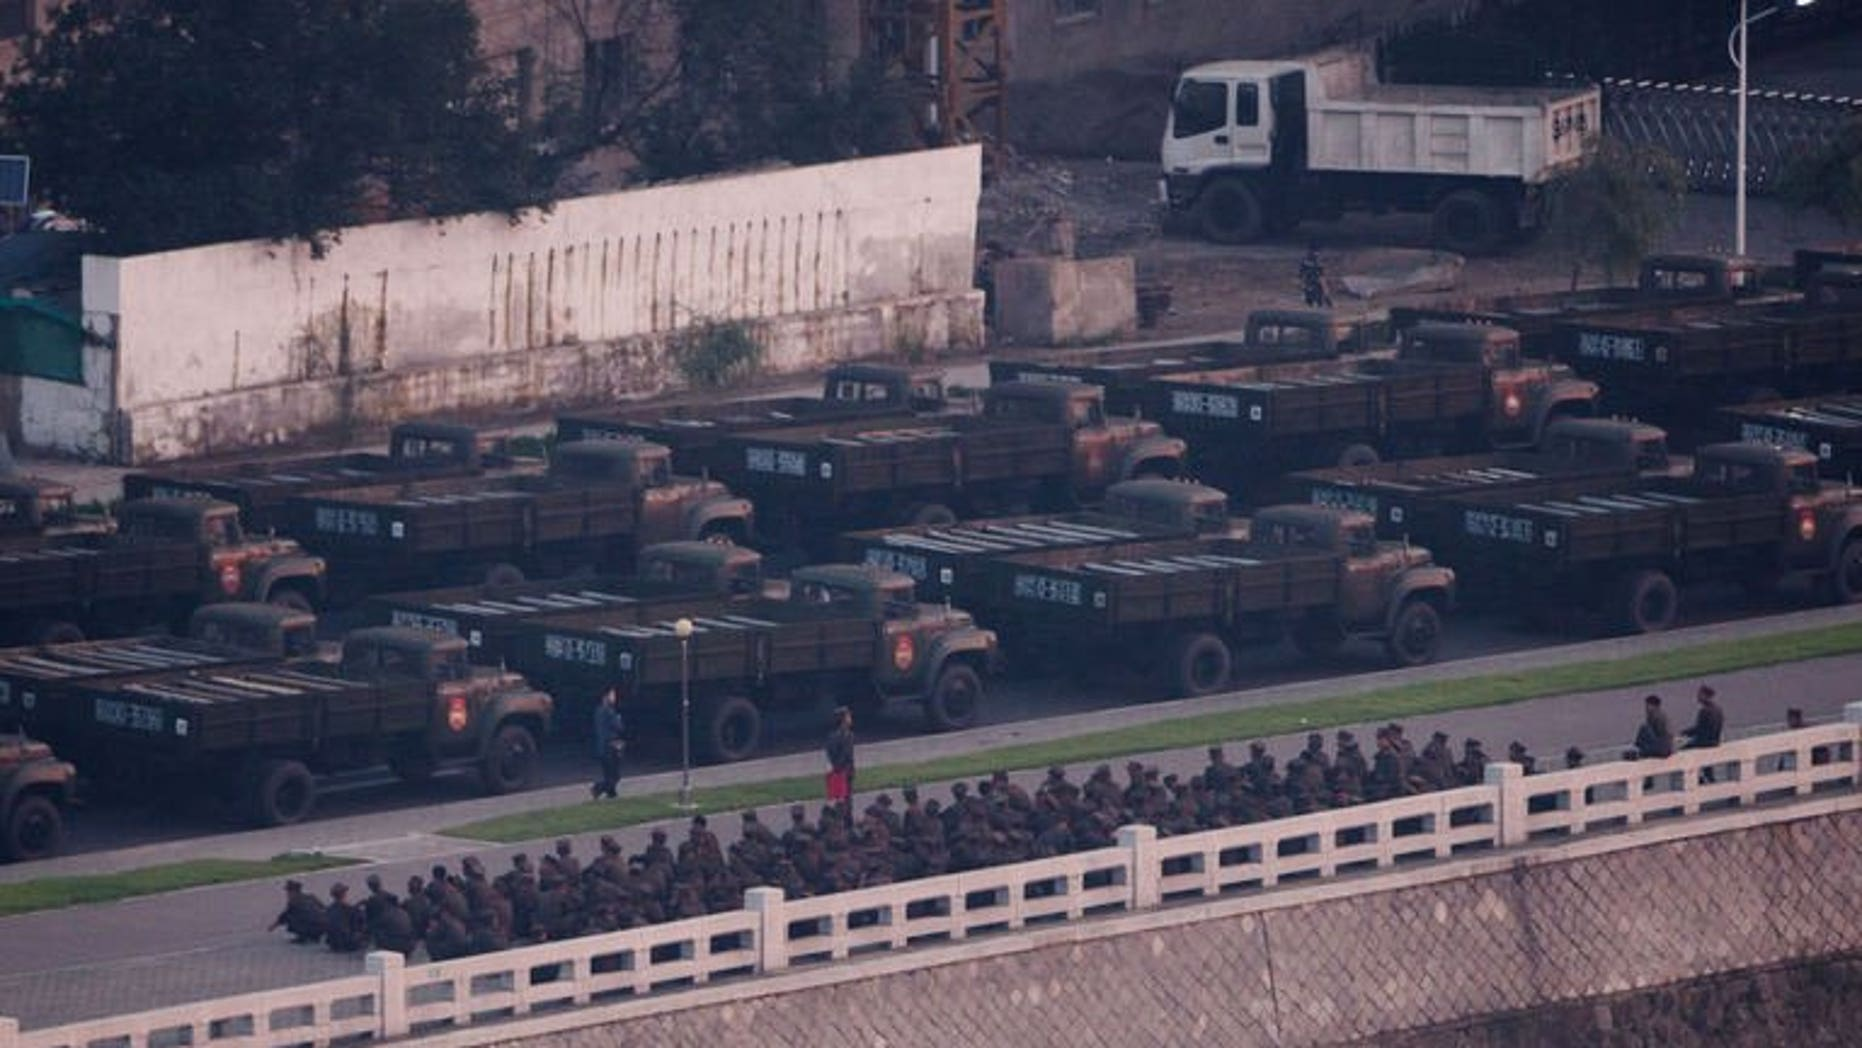 North Korean army vehicles line up during preparations for a militay parade in Pyongyang, early morning on July 27, 2013. N.Korea is staging a major military parade to mark the 60th anniversary of the Korean War ceasefire.